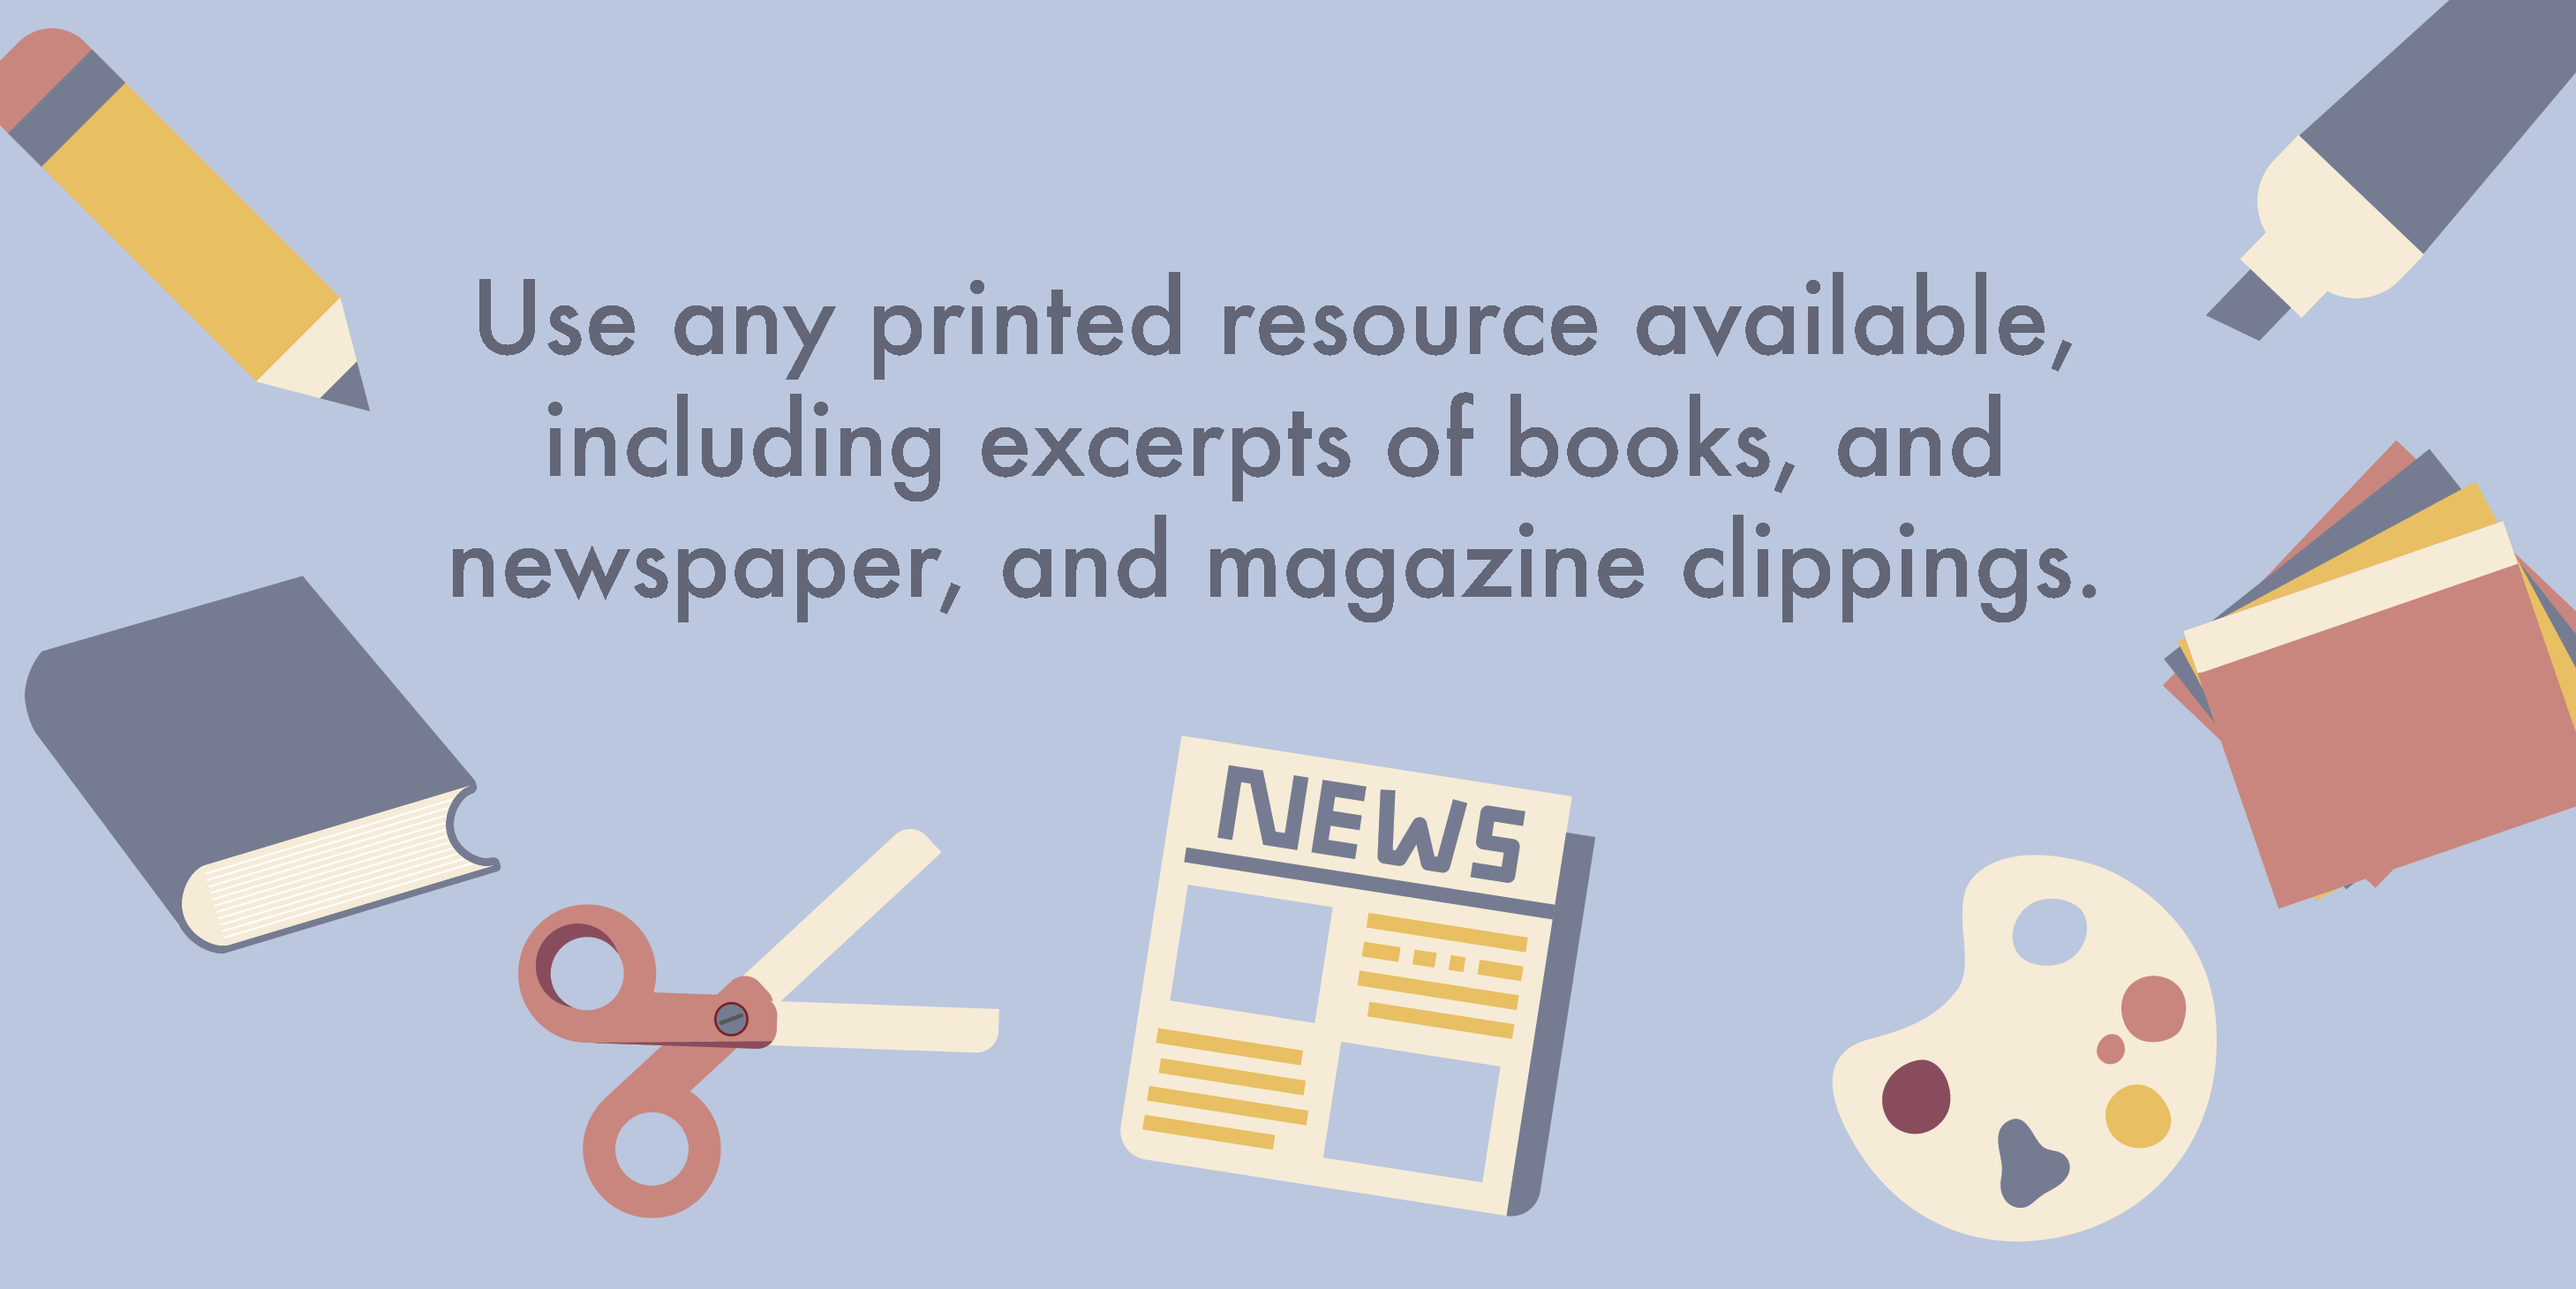 Use any printed resource available, including excerpts of books, and newspaper and magazine clippings.